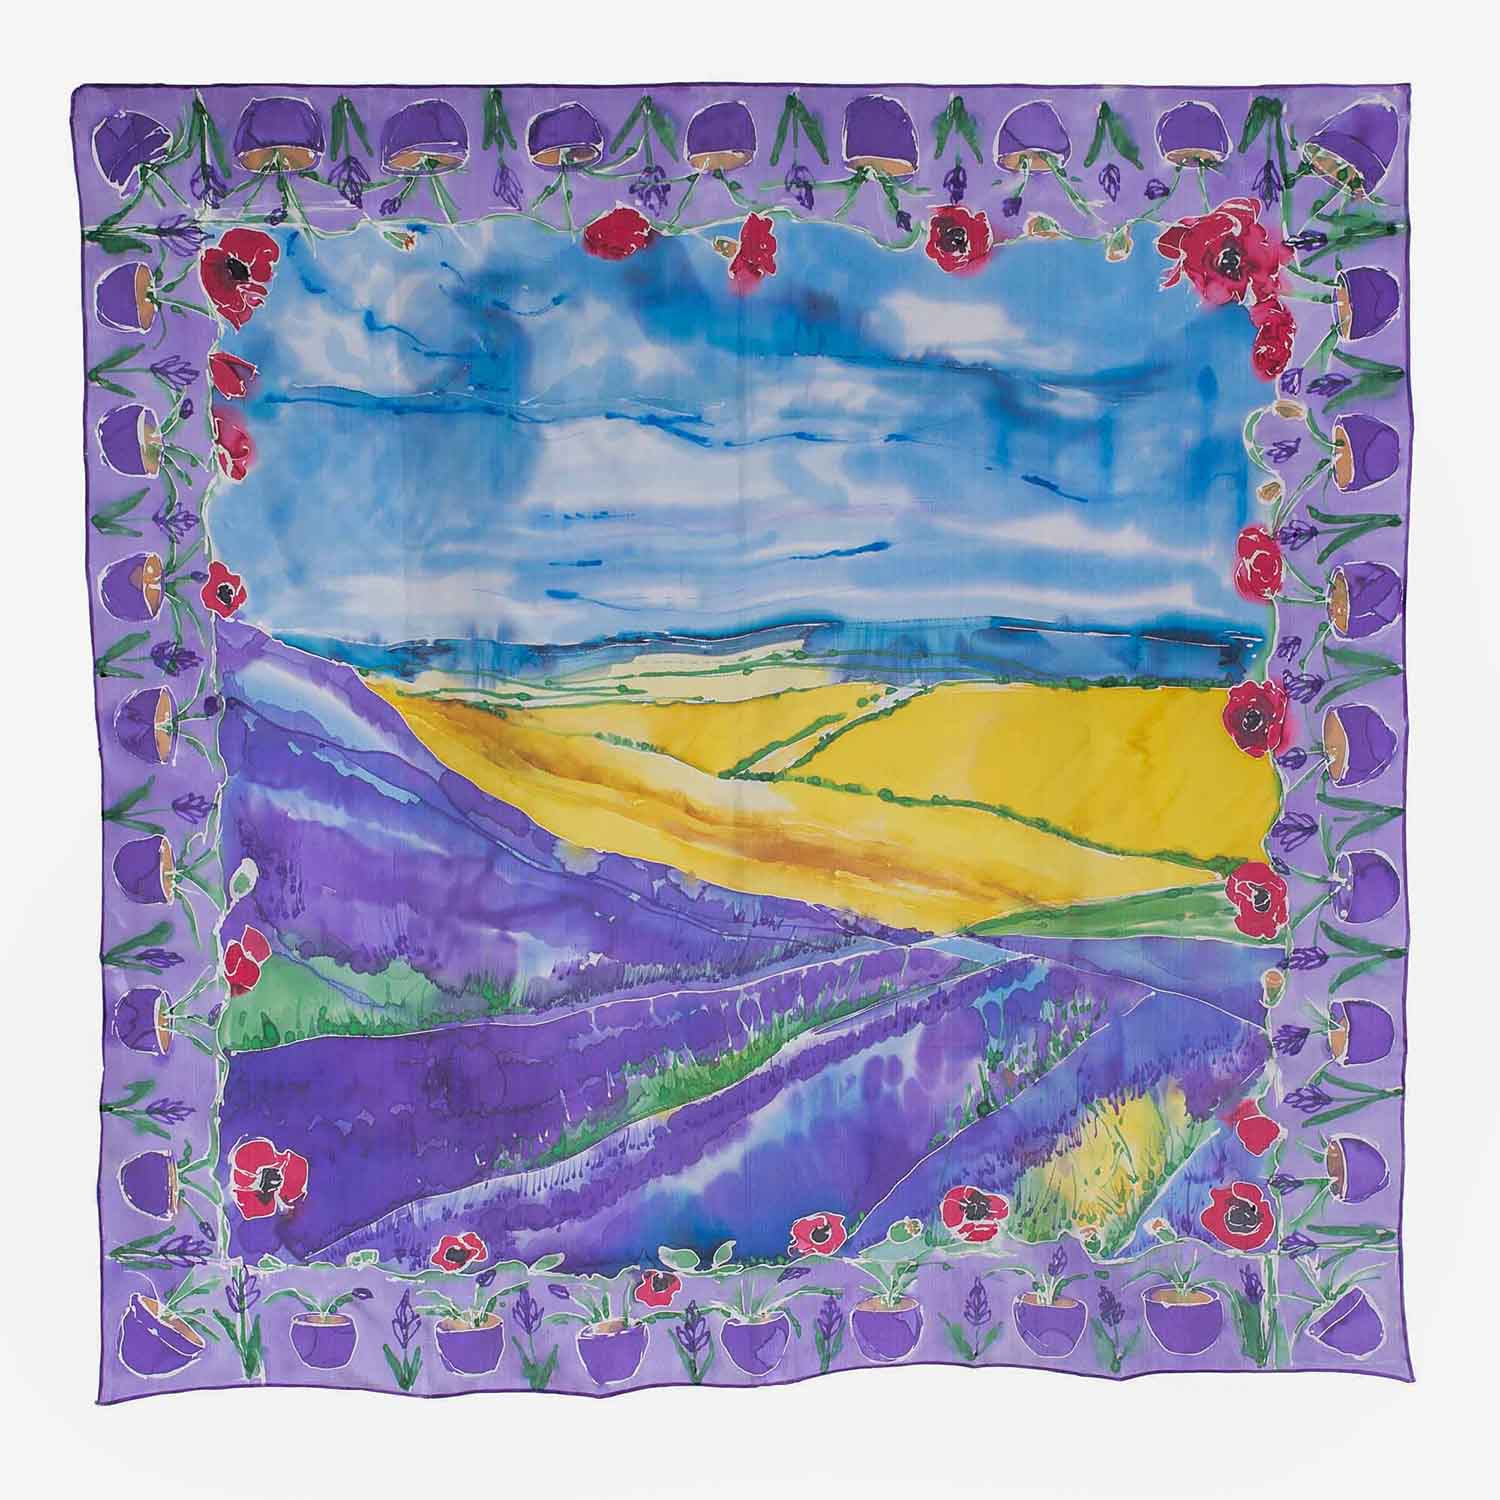 Lavender Fields with Poppies, a hand painted silk scarf by Jane Anne Ryan